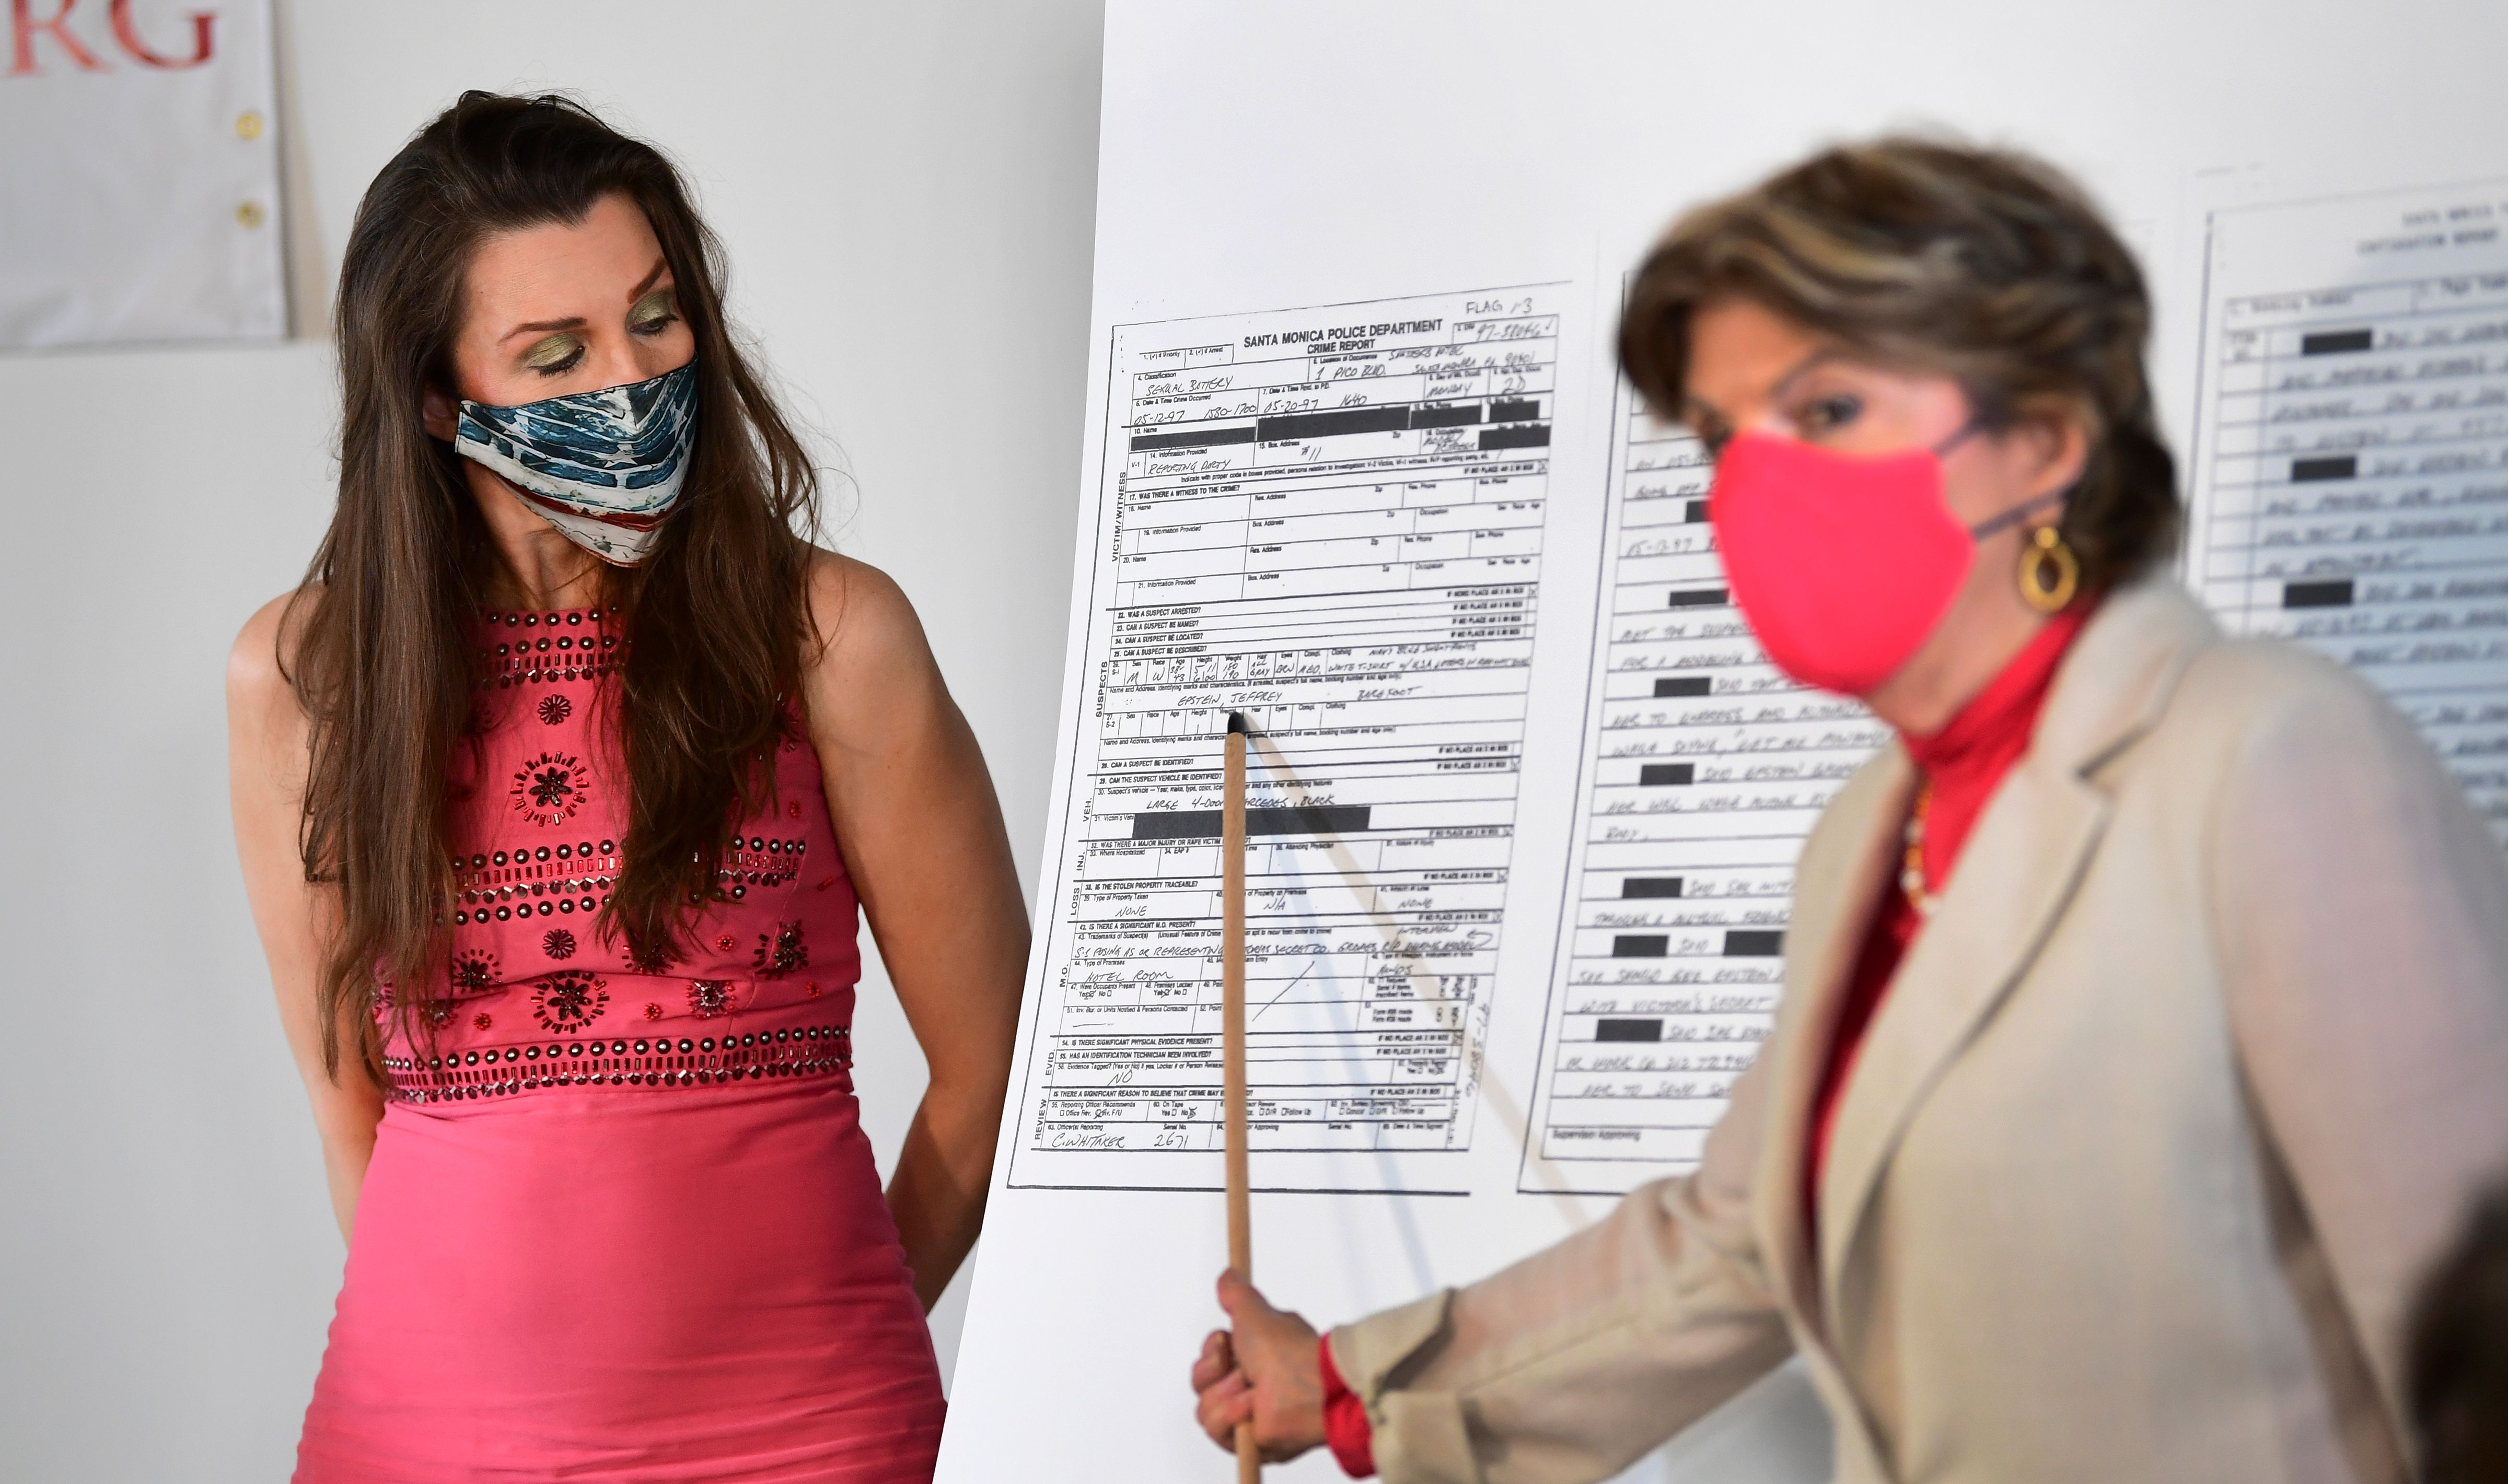 Alicia Arden, one of 16 victims of the late Jeffrey Epstein, looks on as attorney Gloria Allred points to Epstein's name on a police report Arden filed during a press conference in Los Angeles, California on July 6, 2020. - On the one-year anniversary of the arrest of Jeffrey Epstein, attorney Gloria Allred demanded an investigation into why no action was taken when her client filed a police report in 1997 alleging that Jeffrey Epstein had sexually battered her. (Photo by FREDERIC J. BROWN/AFP via Getty Images)